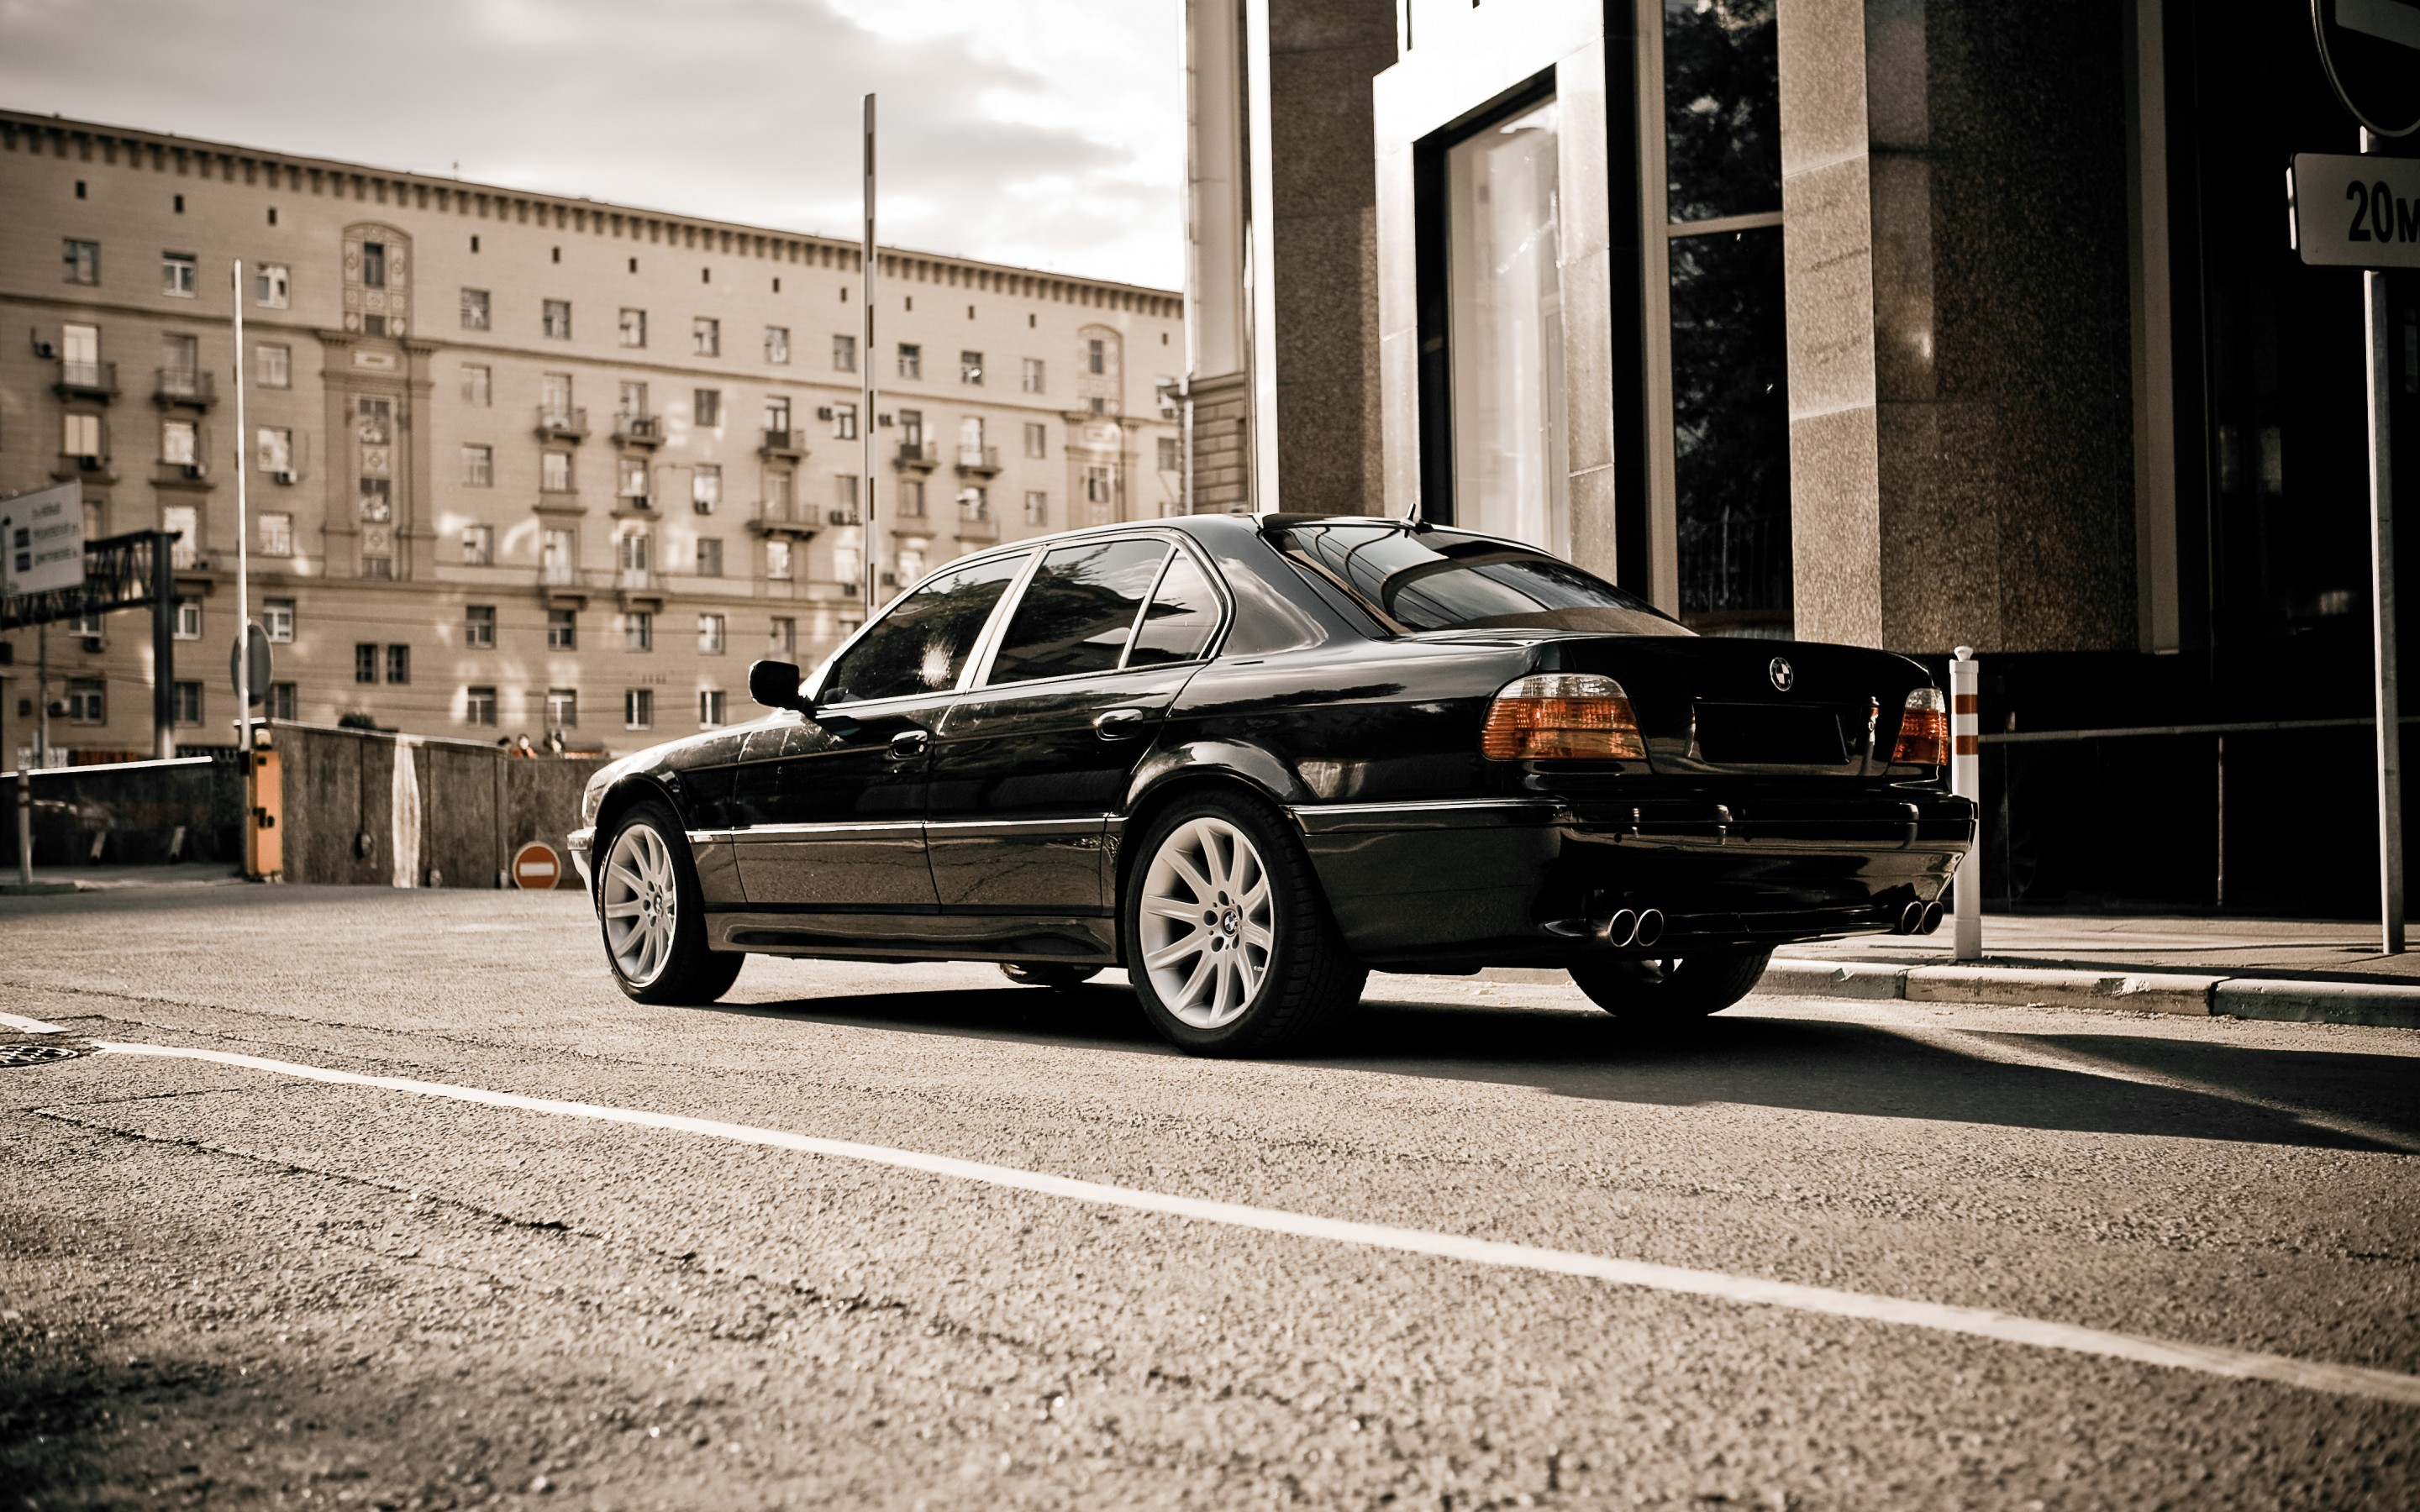 Wallpaper Bmw 750 E38 City Black Ubackground Com